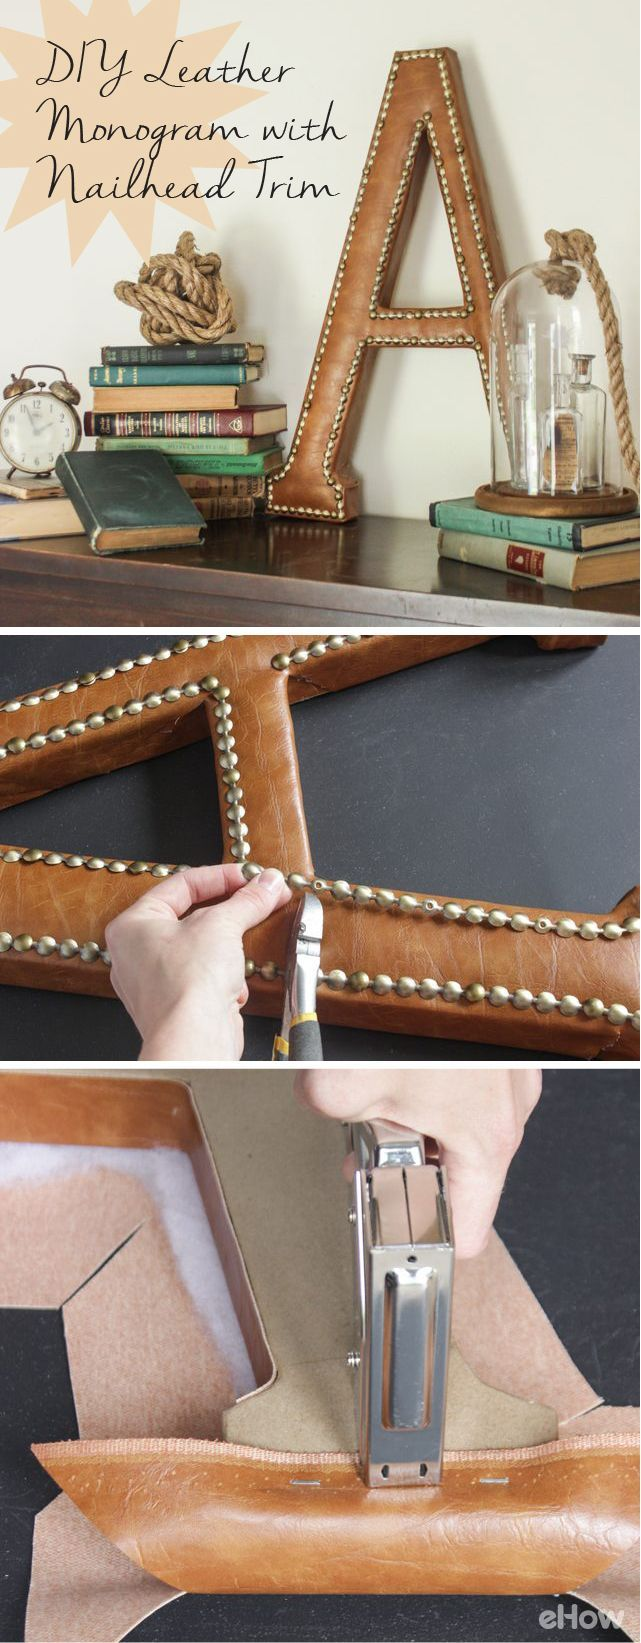 Monograms are a timeless piece of decor that can be stylishly incorporated into wall galleries, bookshelves, mantels and desks. Reminiscent of upholstered leather wing chairs, this version adds a bit of masculine flair with rich-looking leather and shiny brass nails, and would lend a bit of library chic to any space. DIY instructions here…